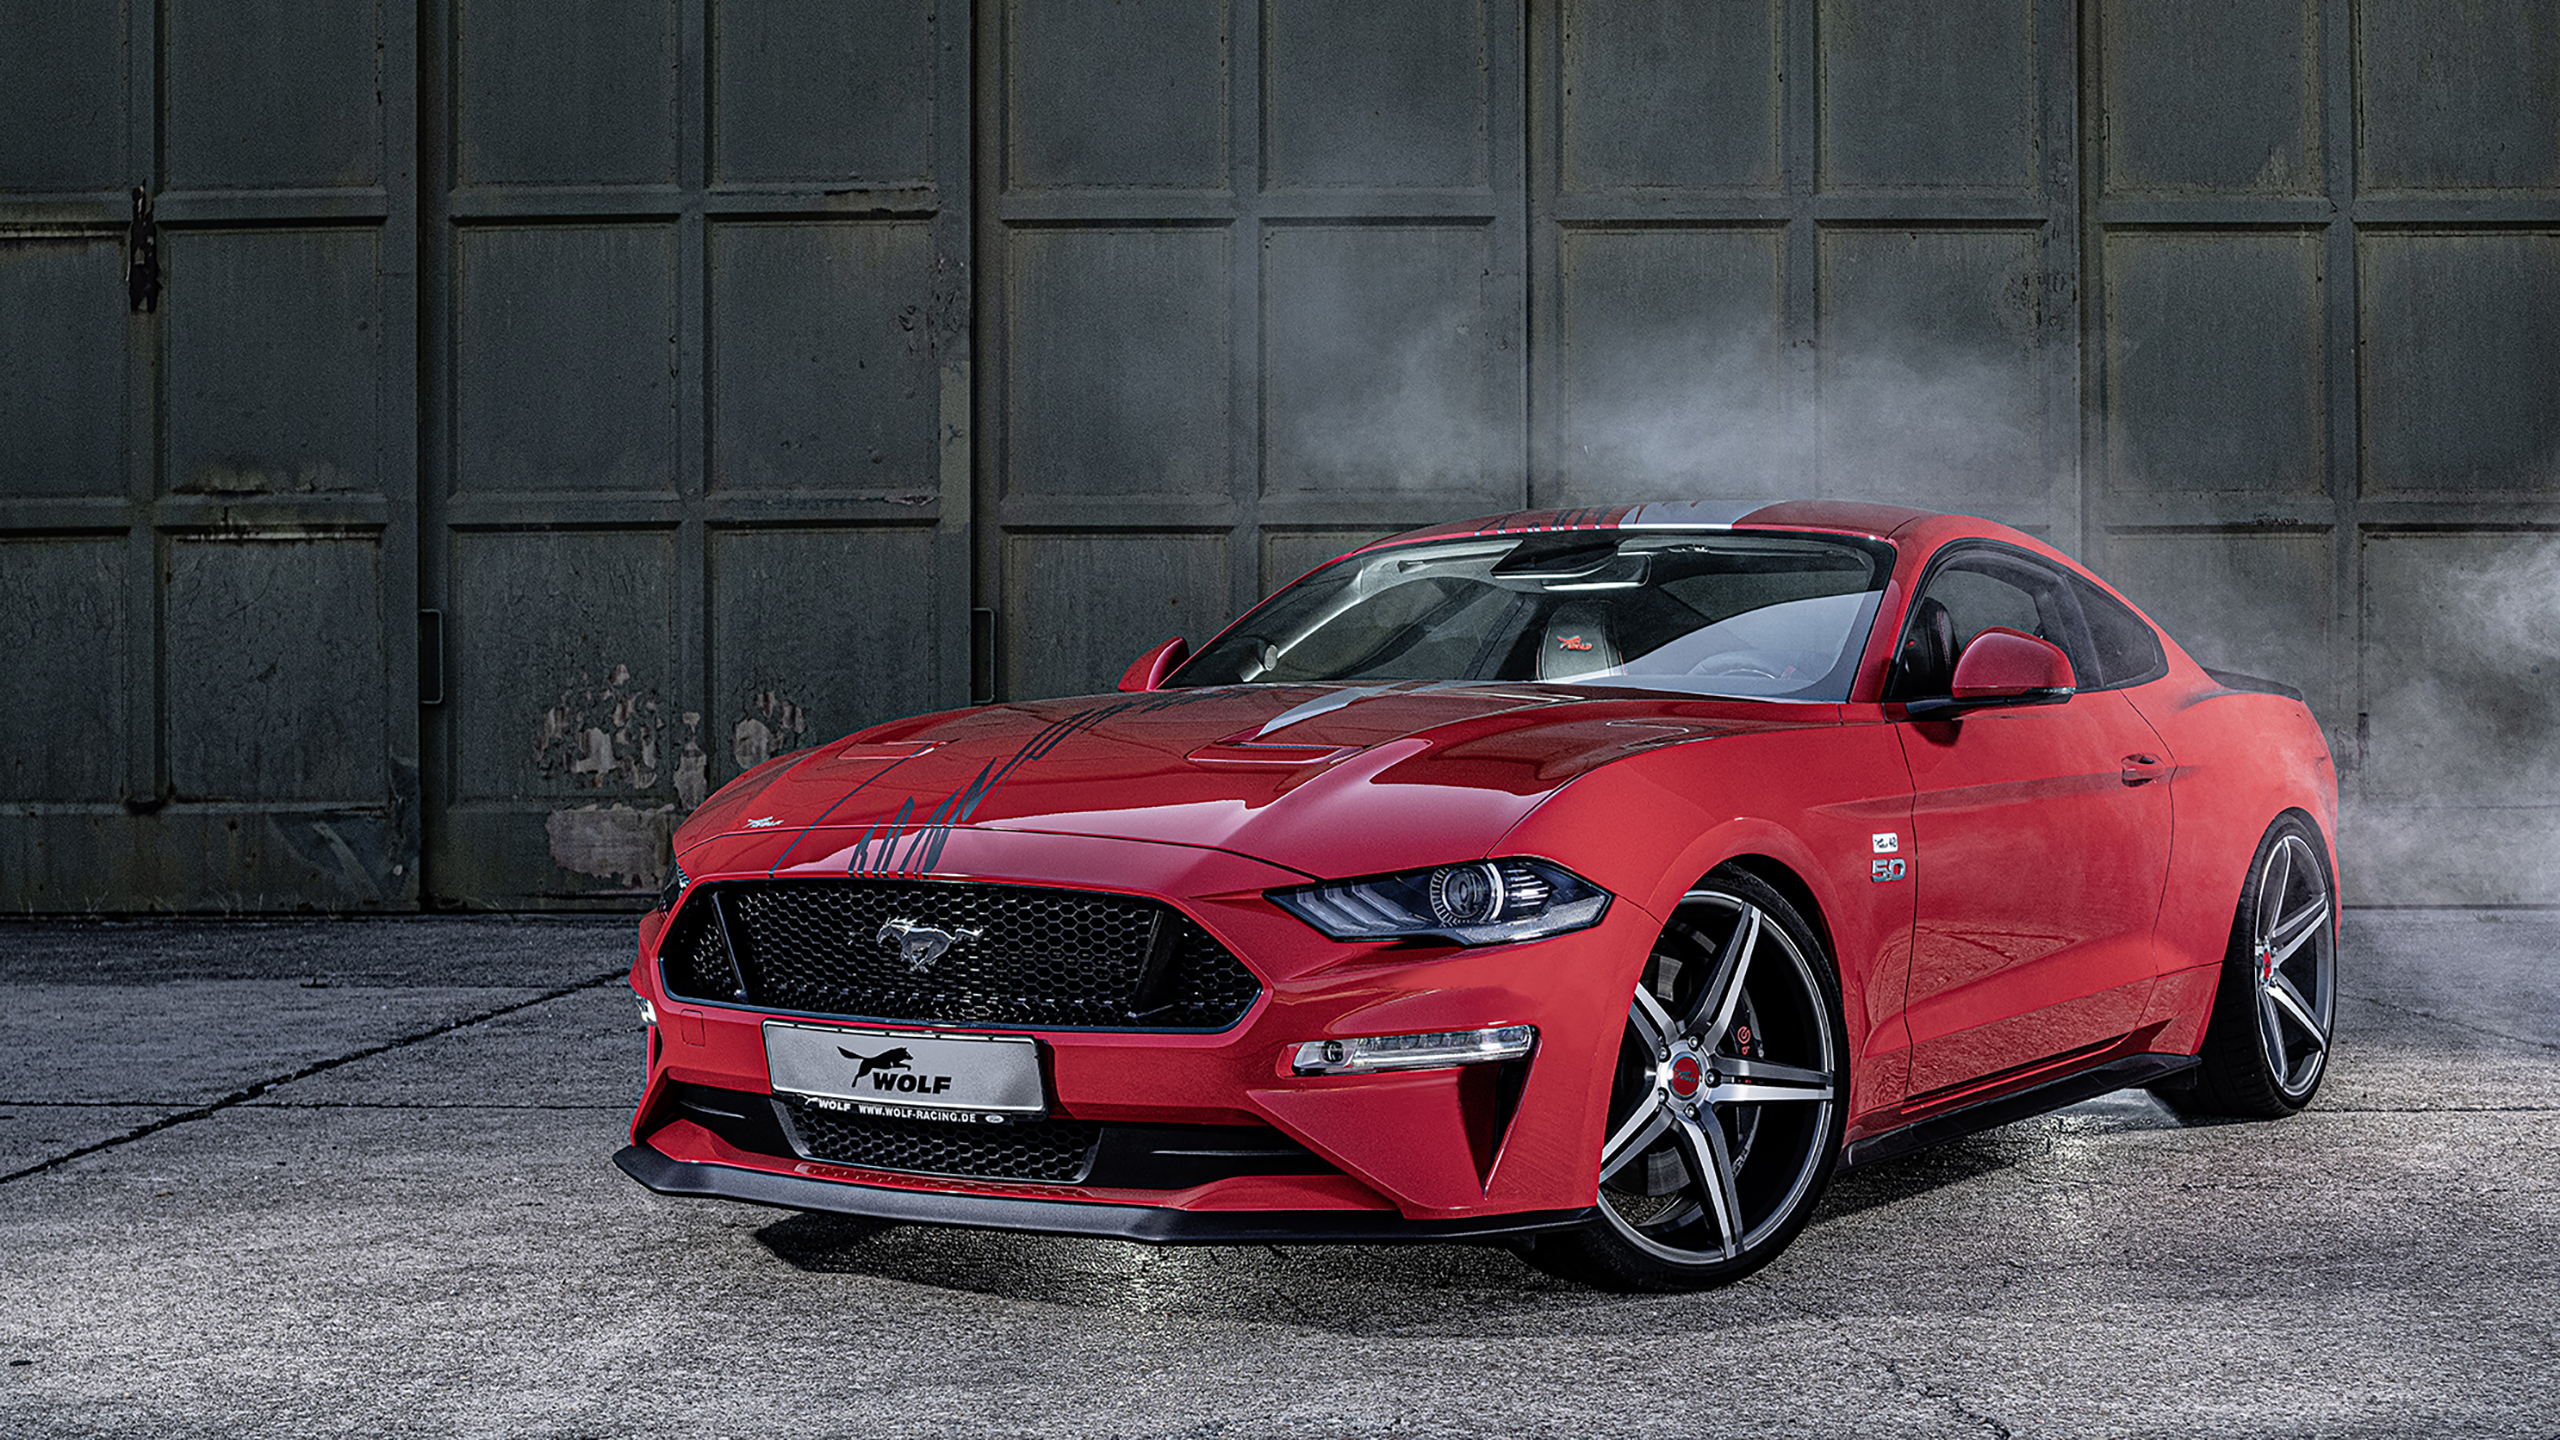 Wolf Racing Ford Mustang One of 7 2019 3 Wallpaper | HD ...